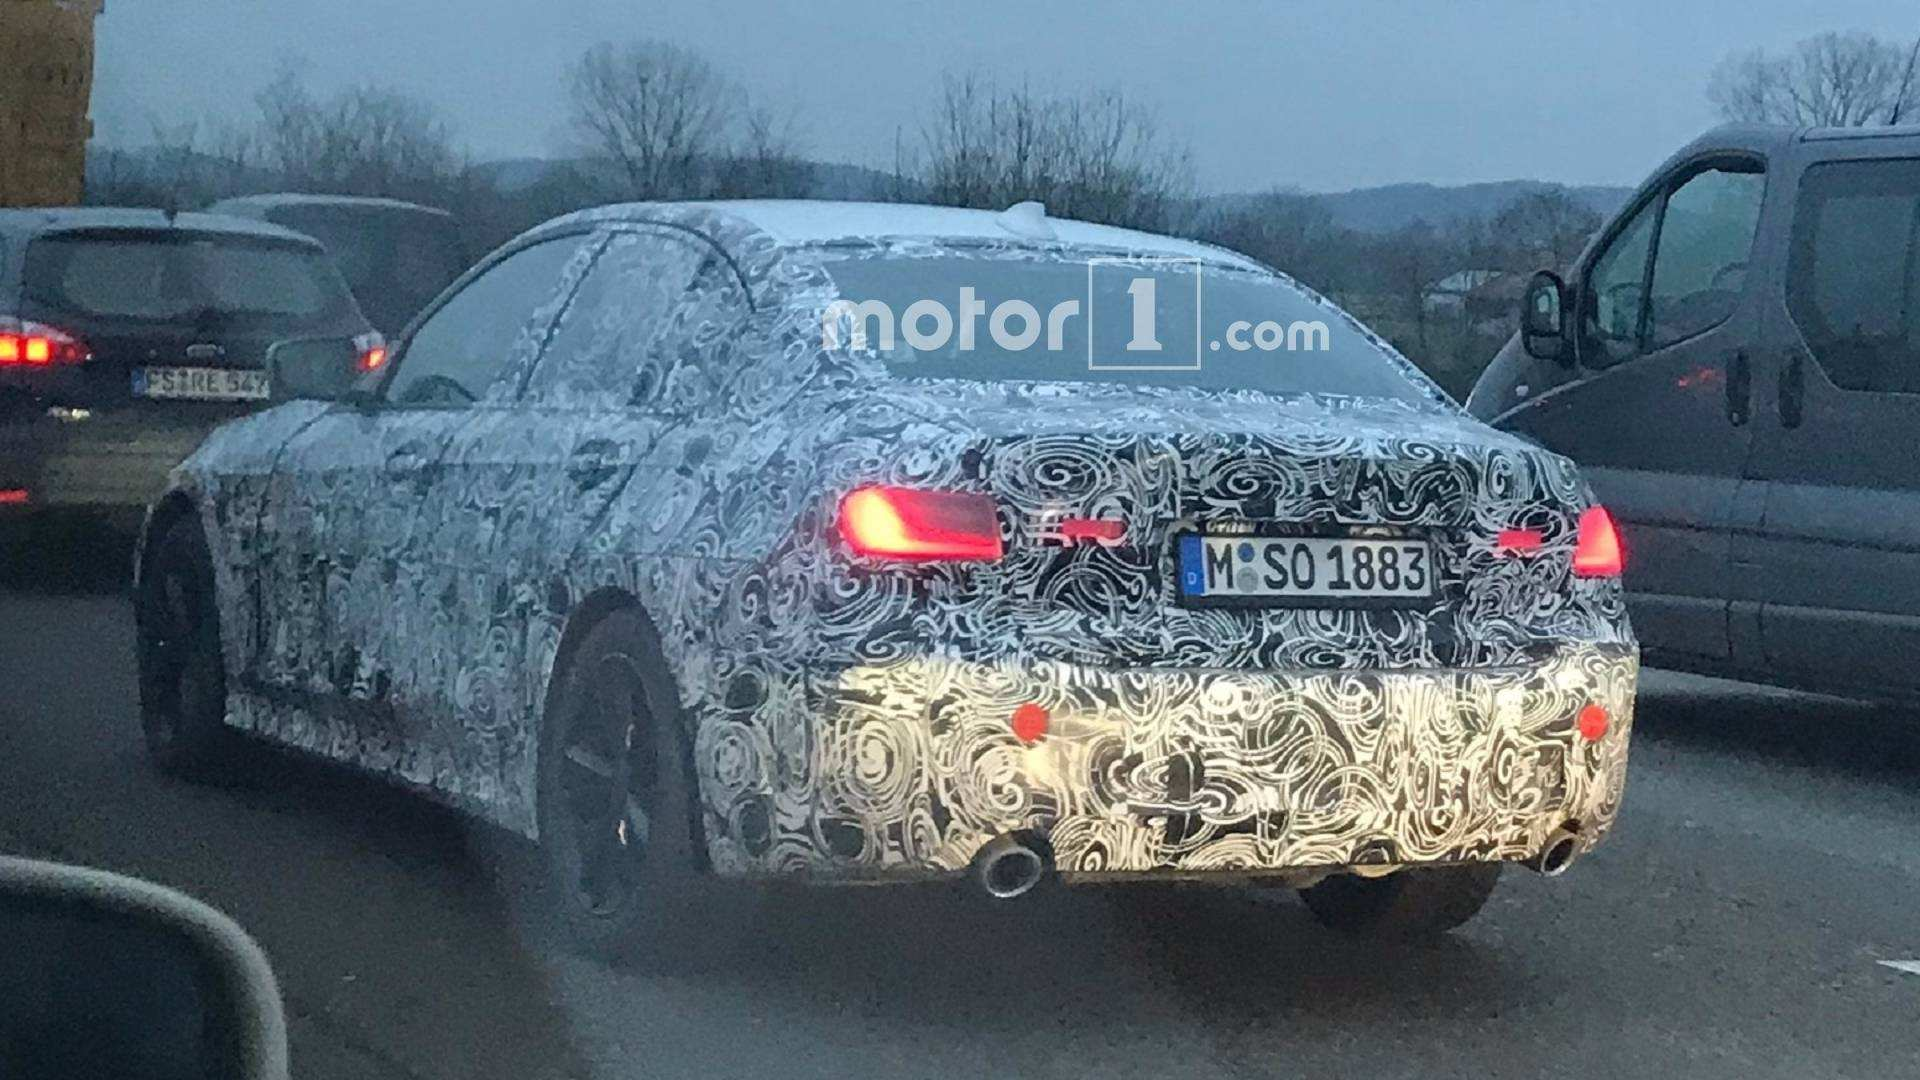 98 All New 2019 Spy Shots BMW 3 Series Concept And Review